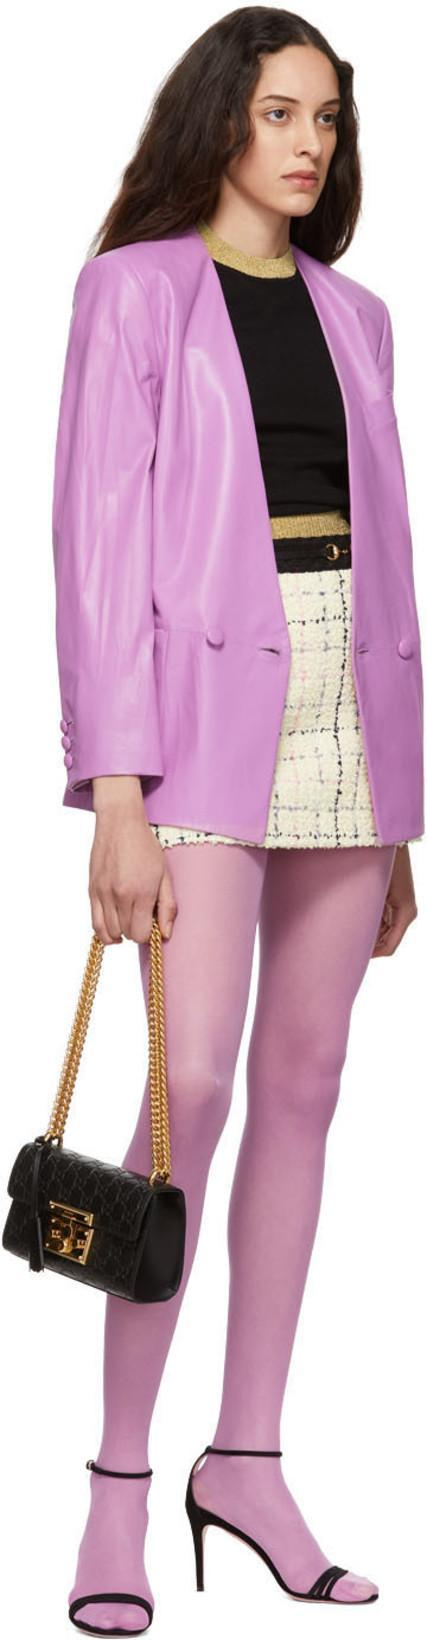 bac13fdf1 Gucci Oversize Leather Jacket In Lilac | ModeSens